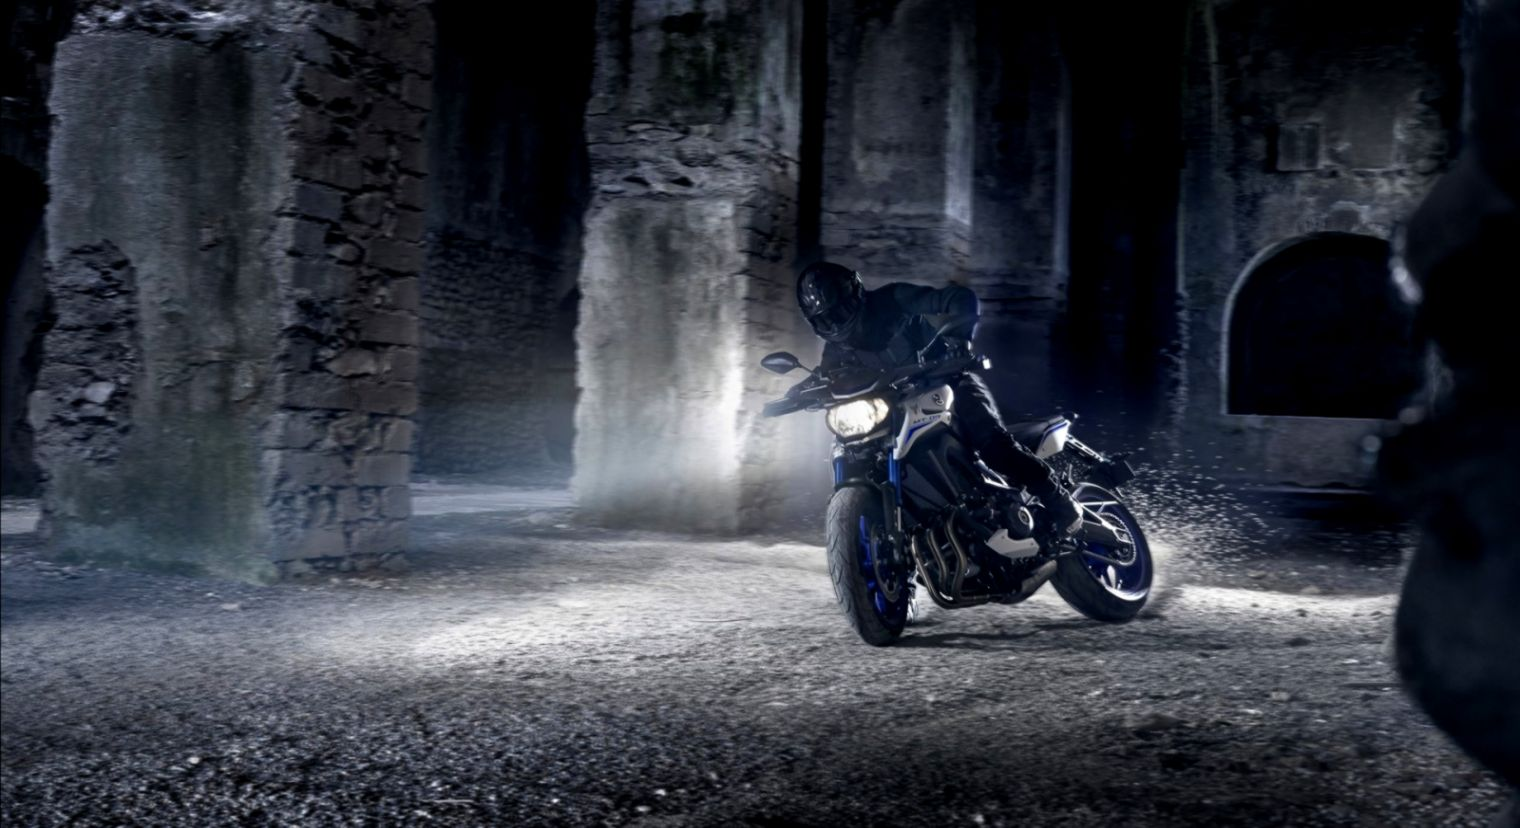 Yamaha Mt 09 Motorcycle Wallpaper Gandoss Wallpapers